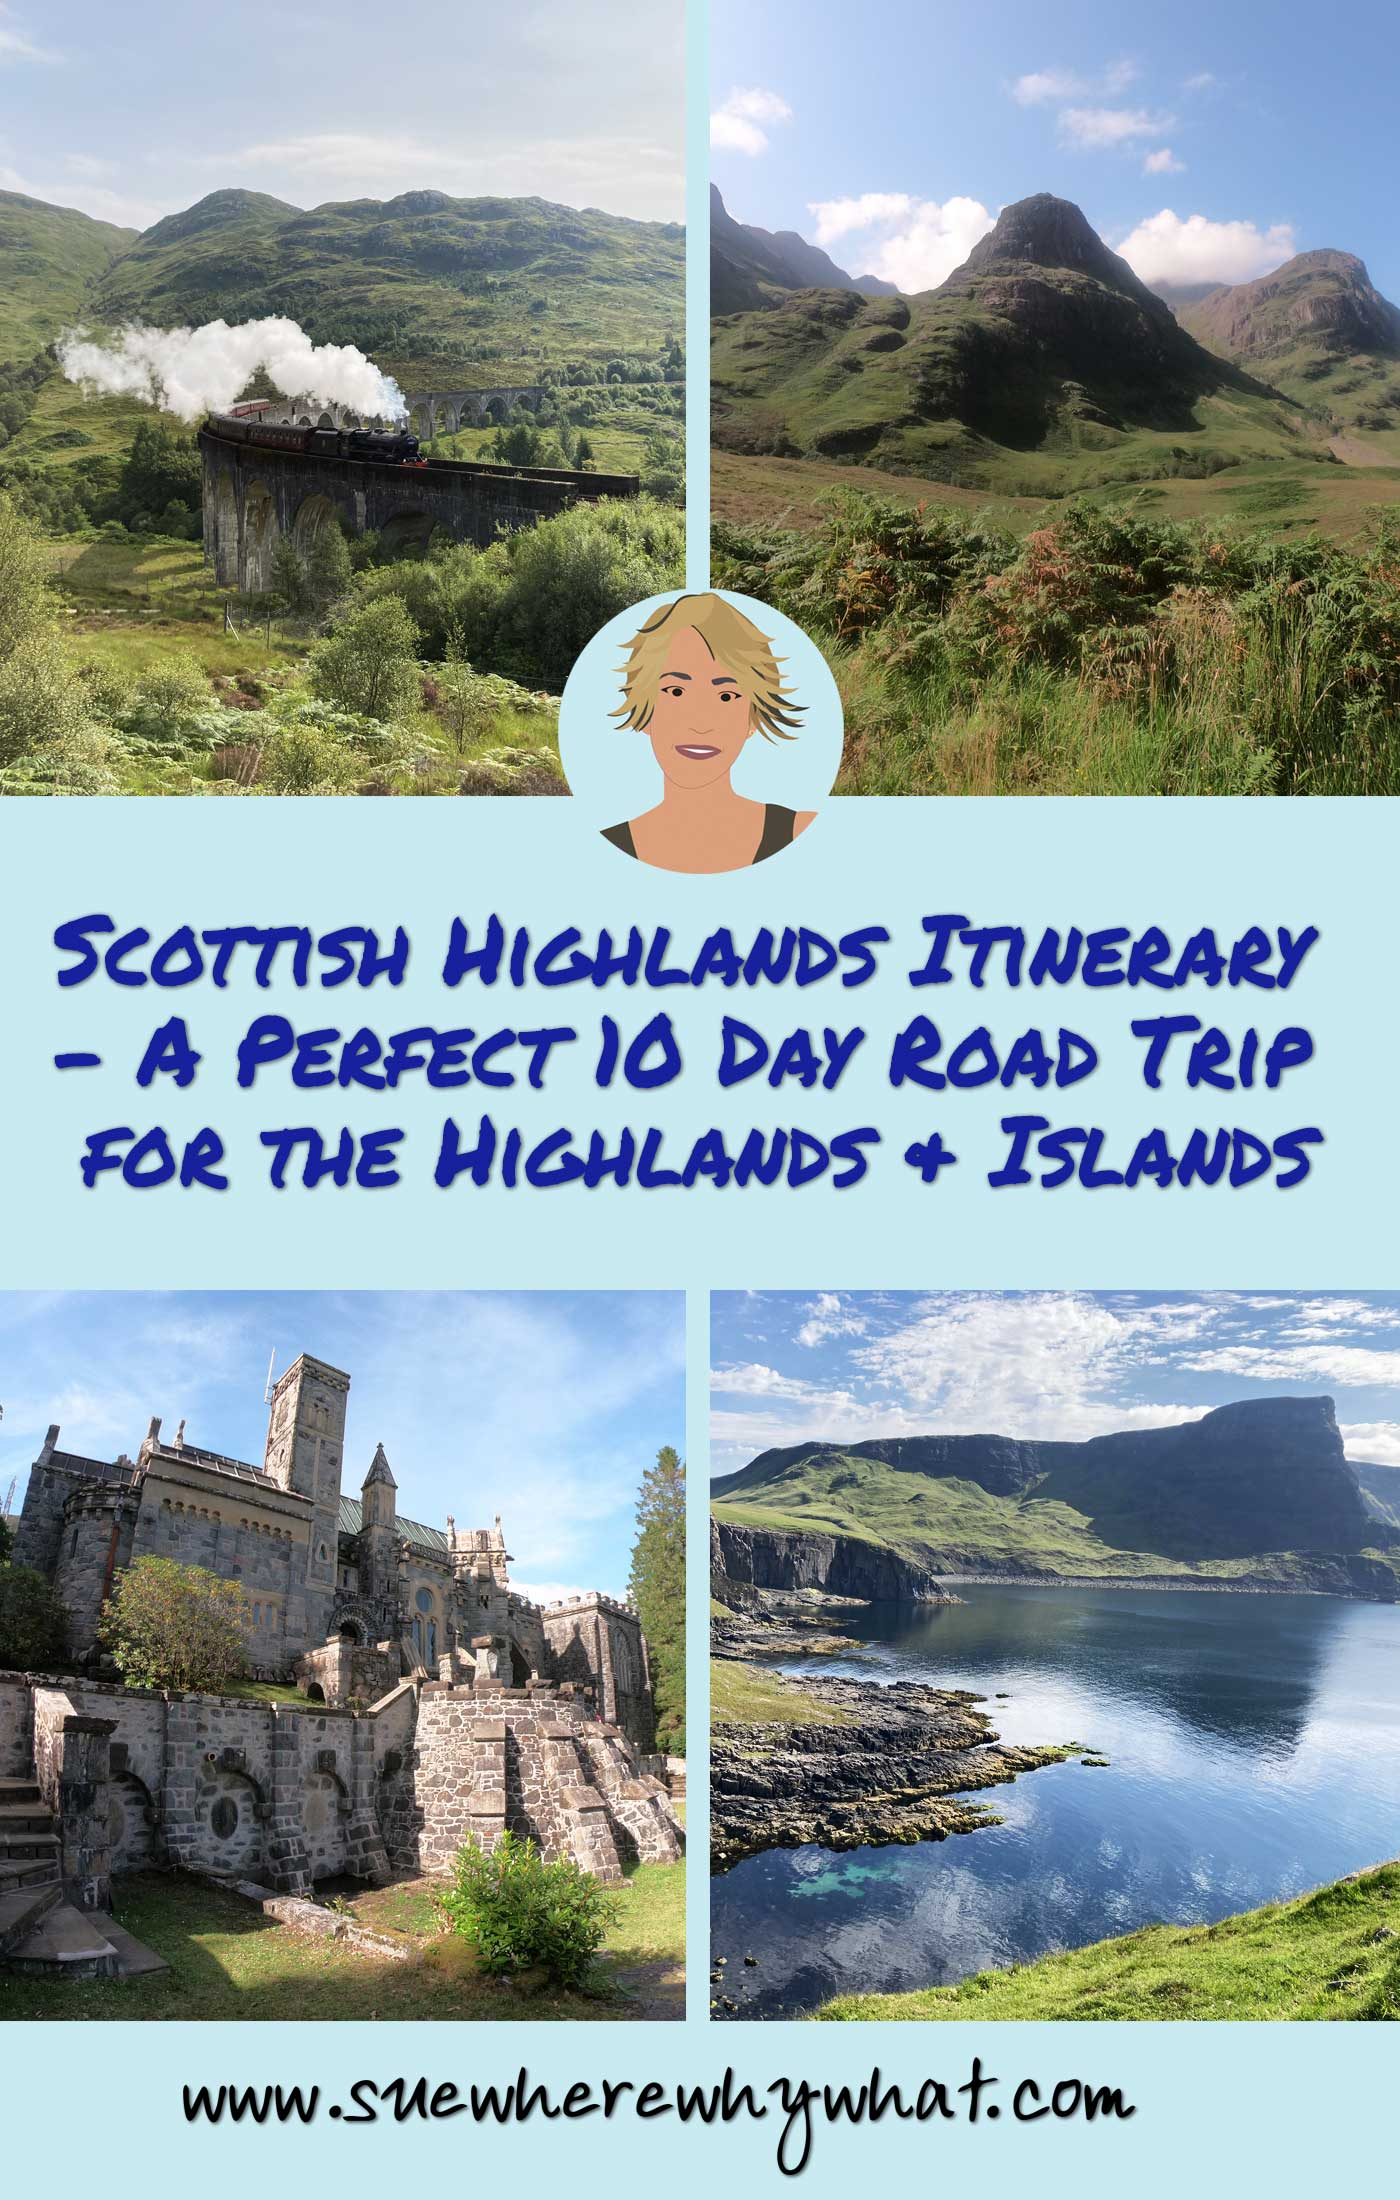 Scottish Highlands Itinerary – A Perfect 10 Day Road Trip for the Highlands & Islands